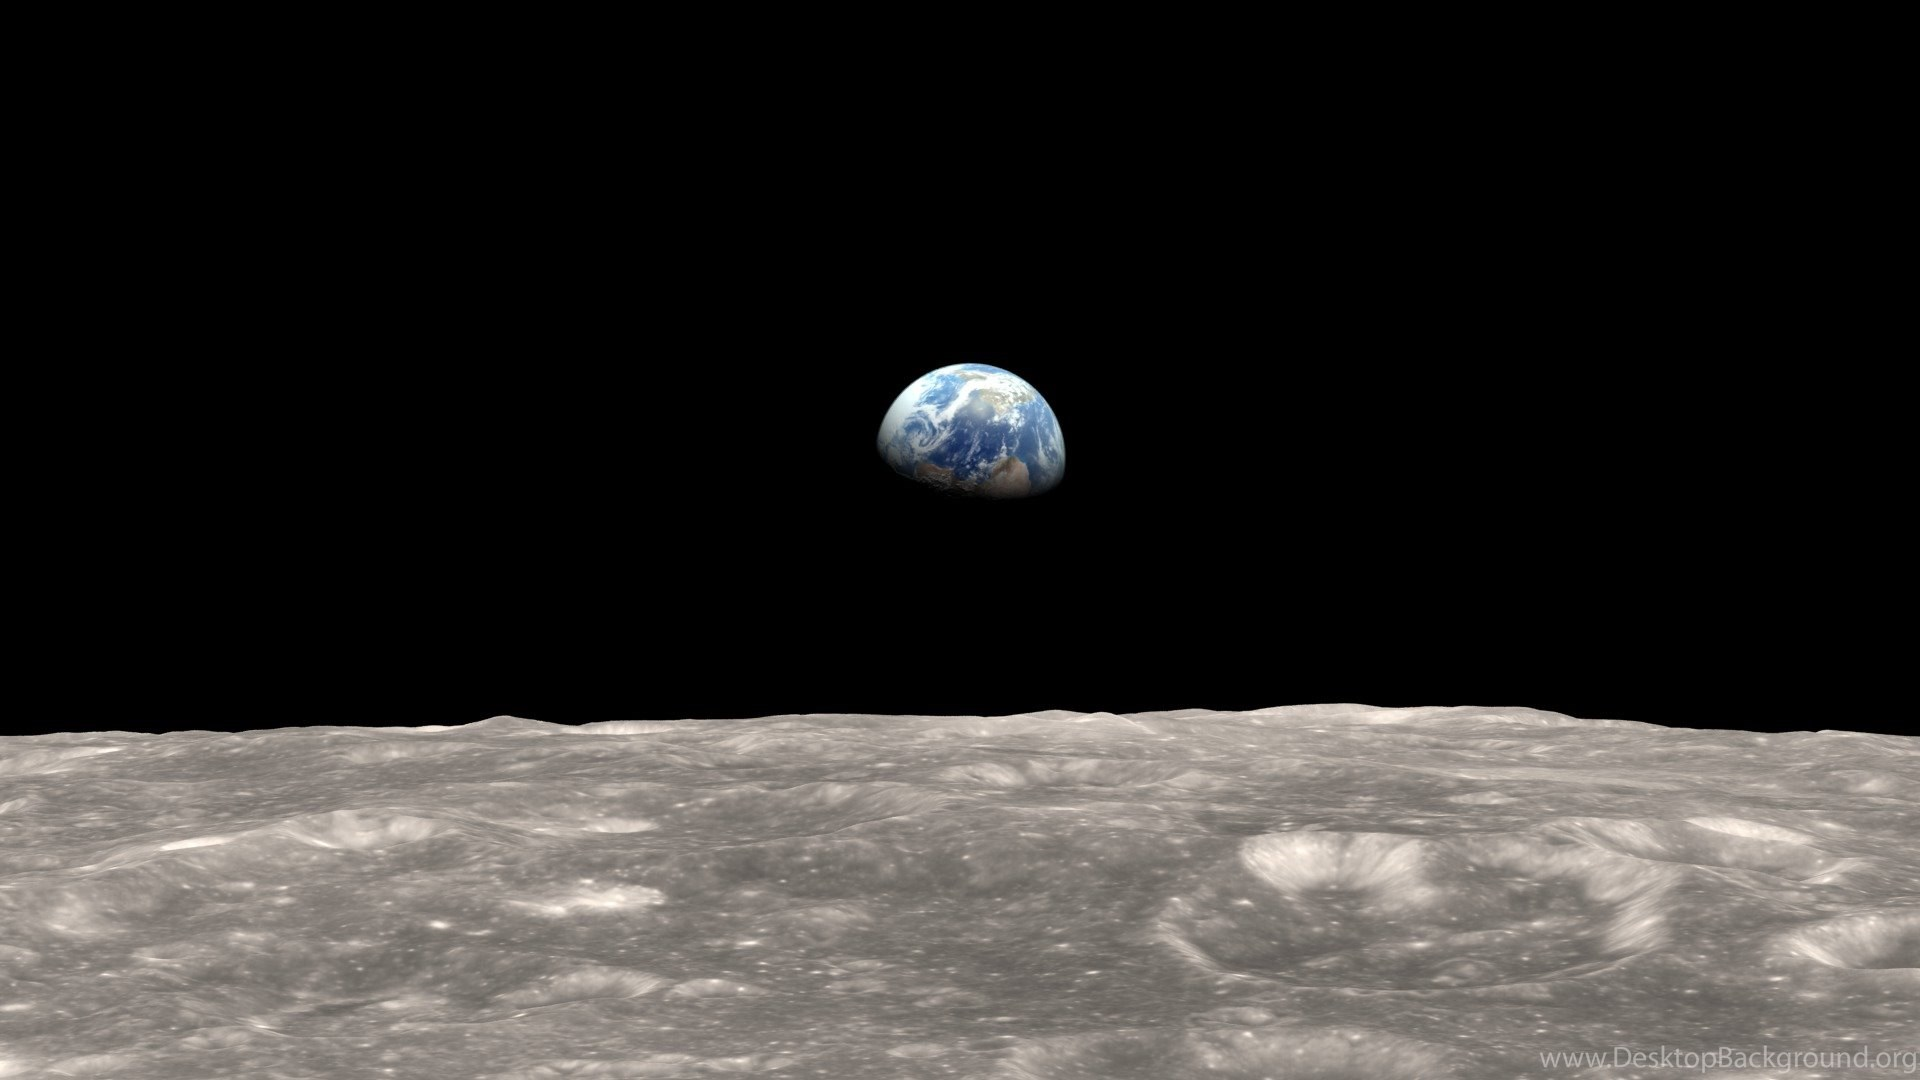 Nasa wallpapers earthrise page 2 pics about space - Nasa space wallpaper 1920x1080 ...